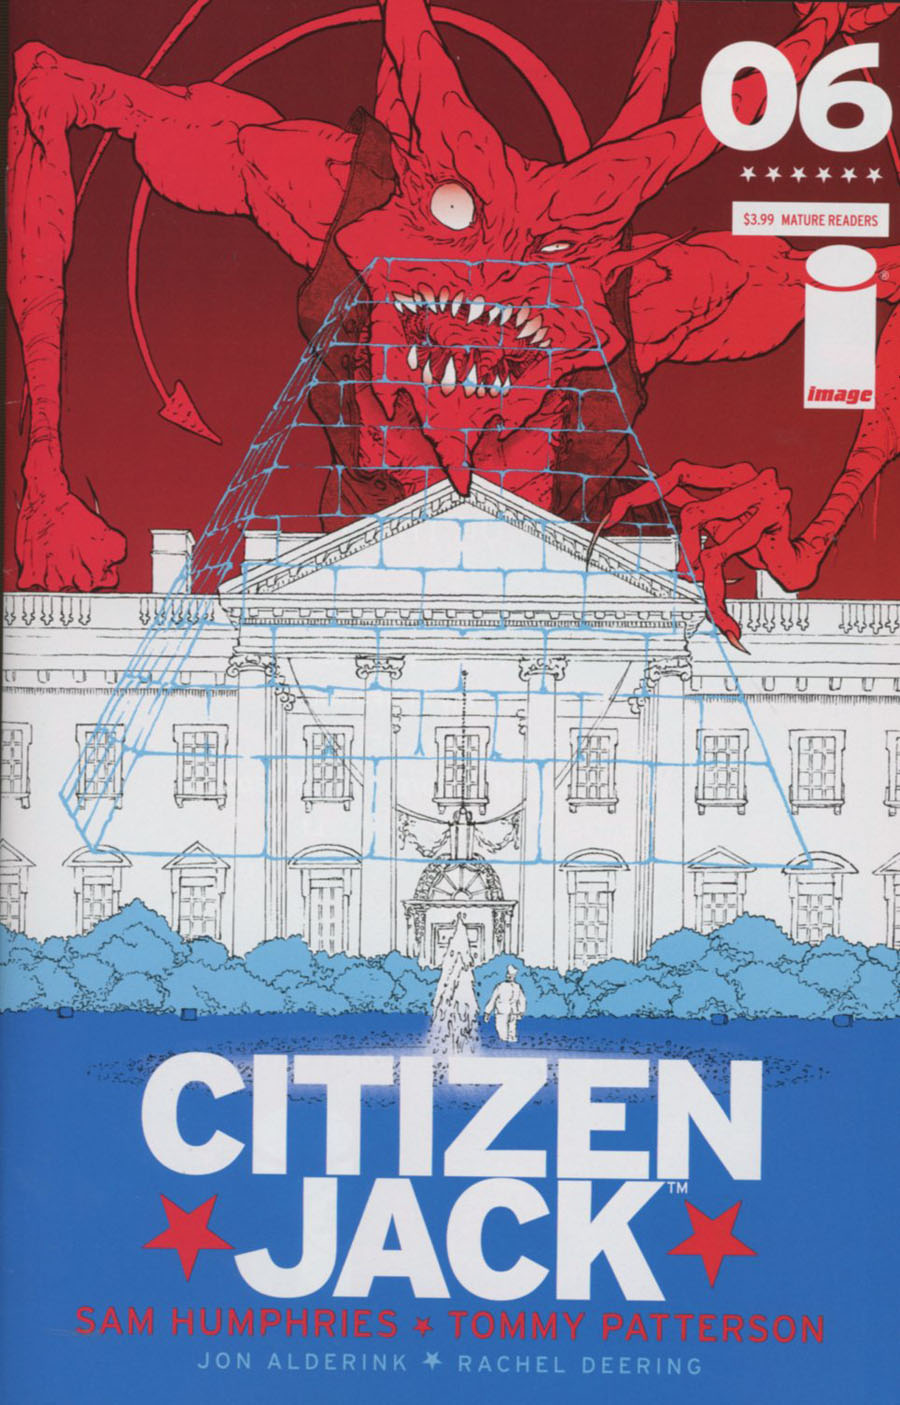 Citizen Jack #6 Cover A Tommy Patterson & Dylan Todd